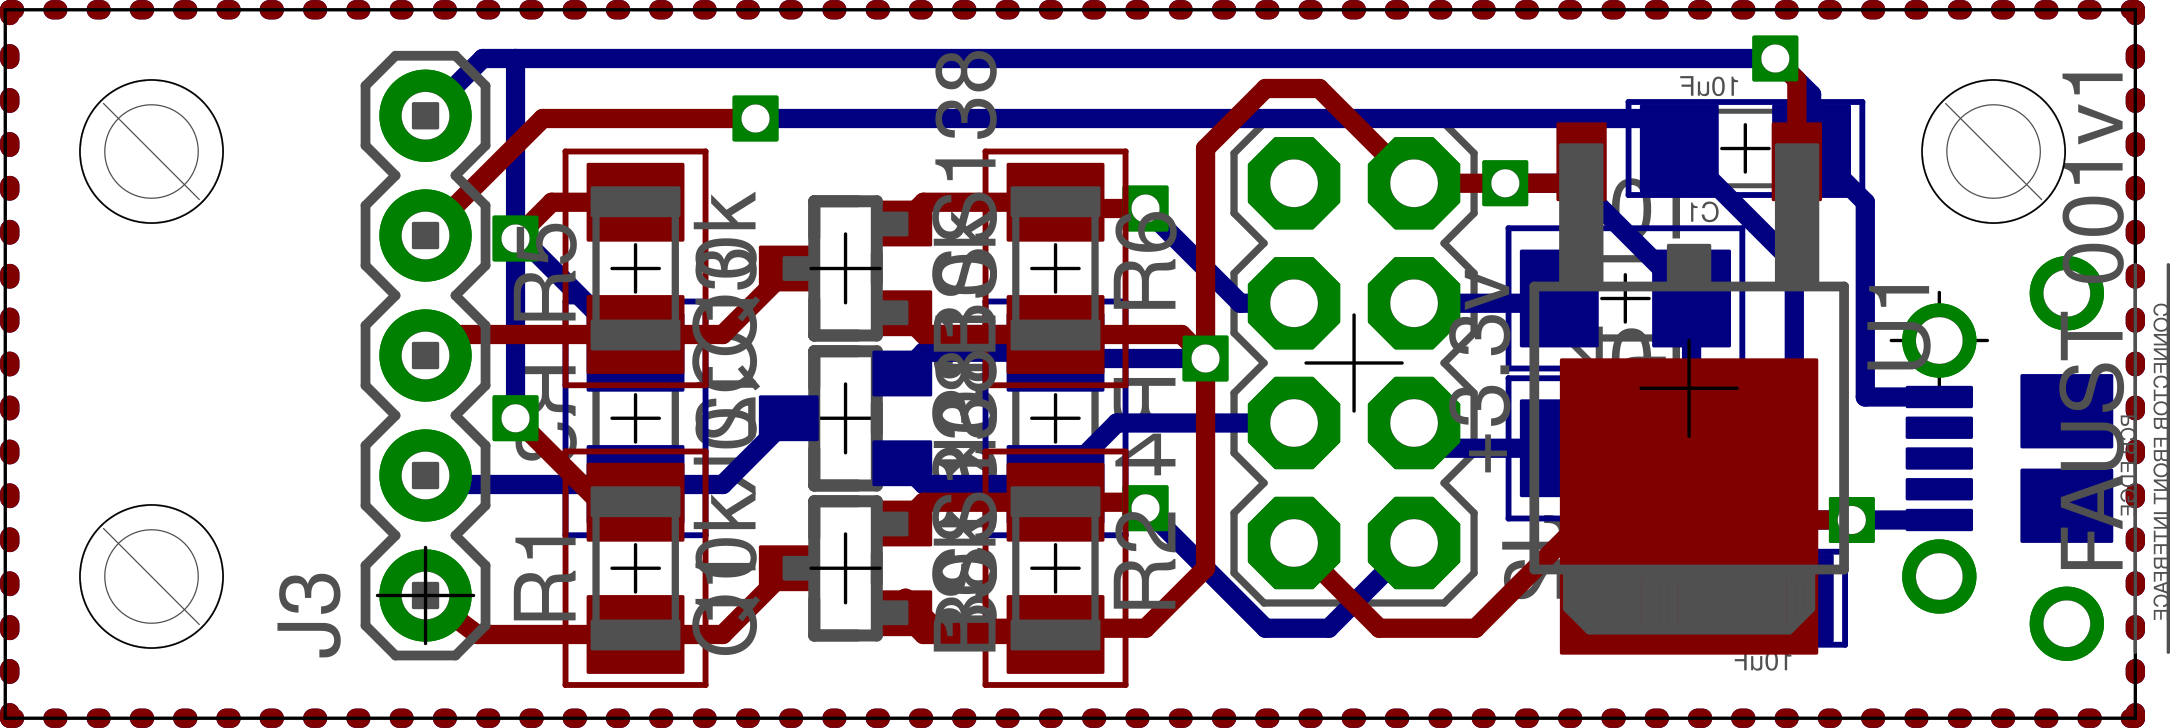 PCB CAD for mating board